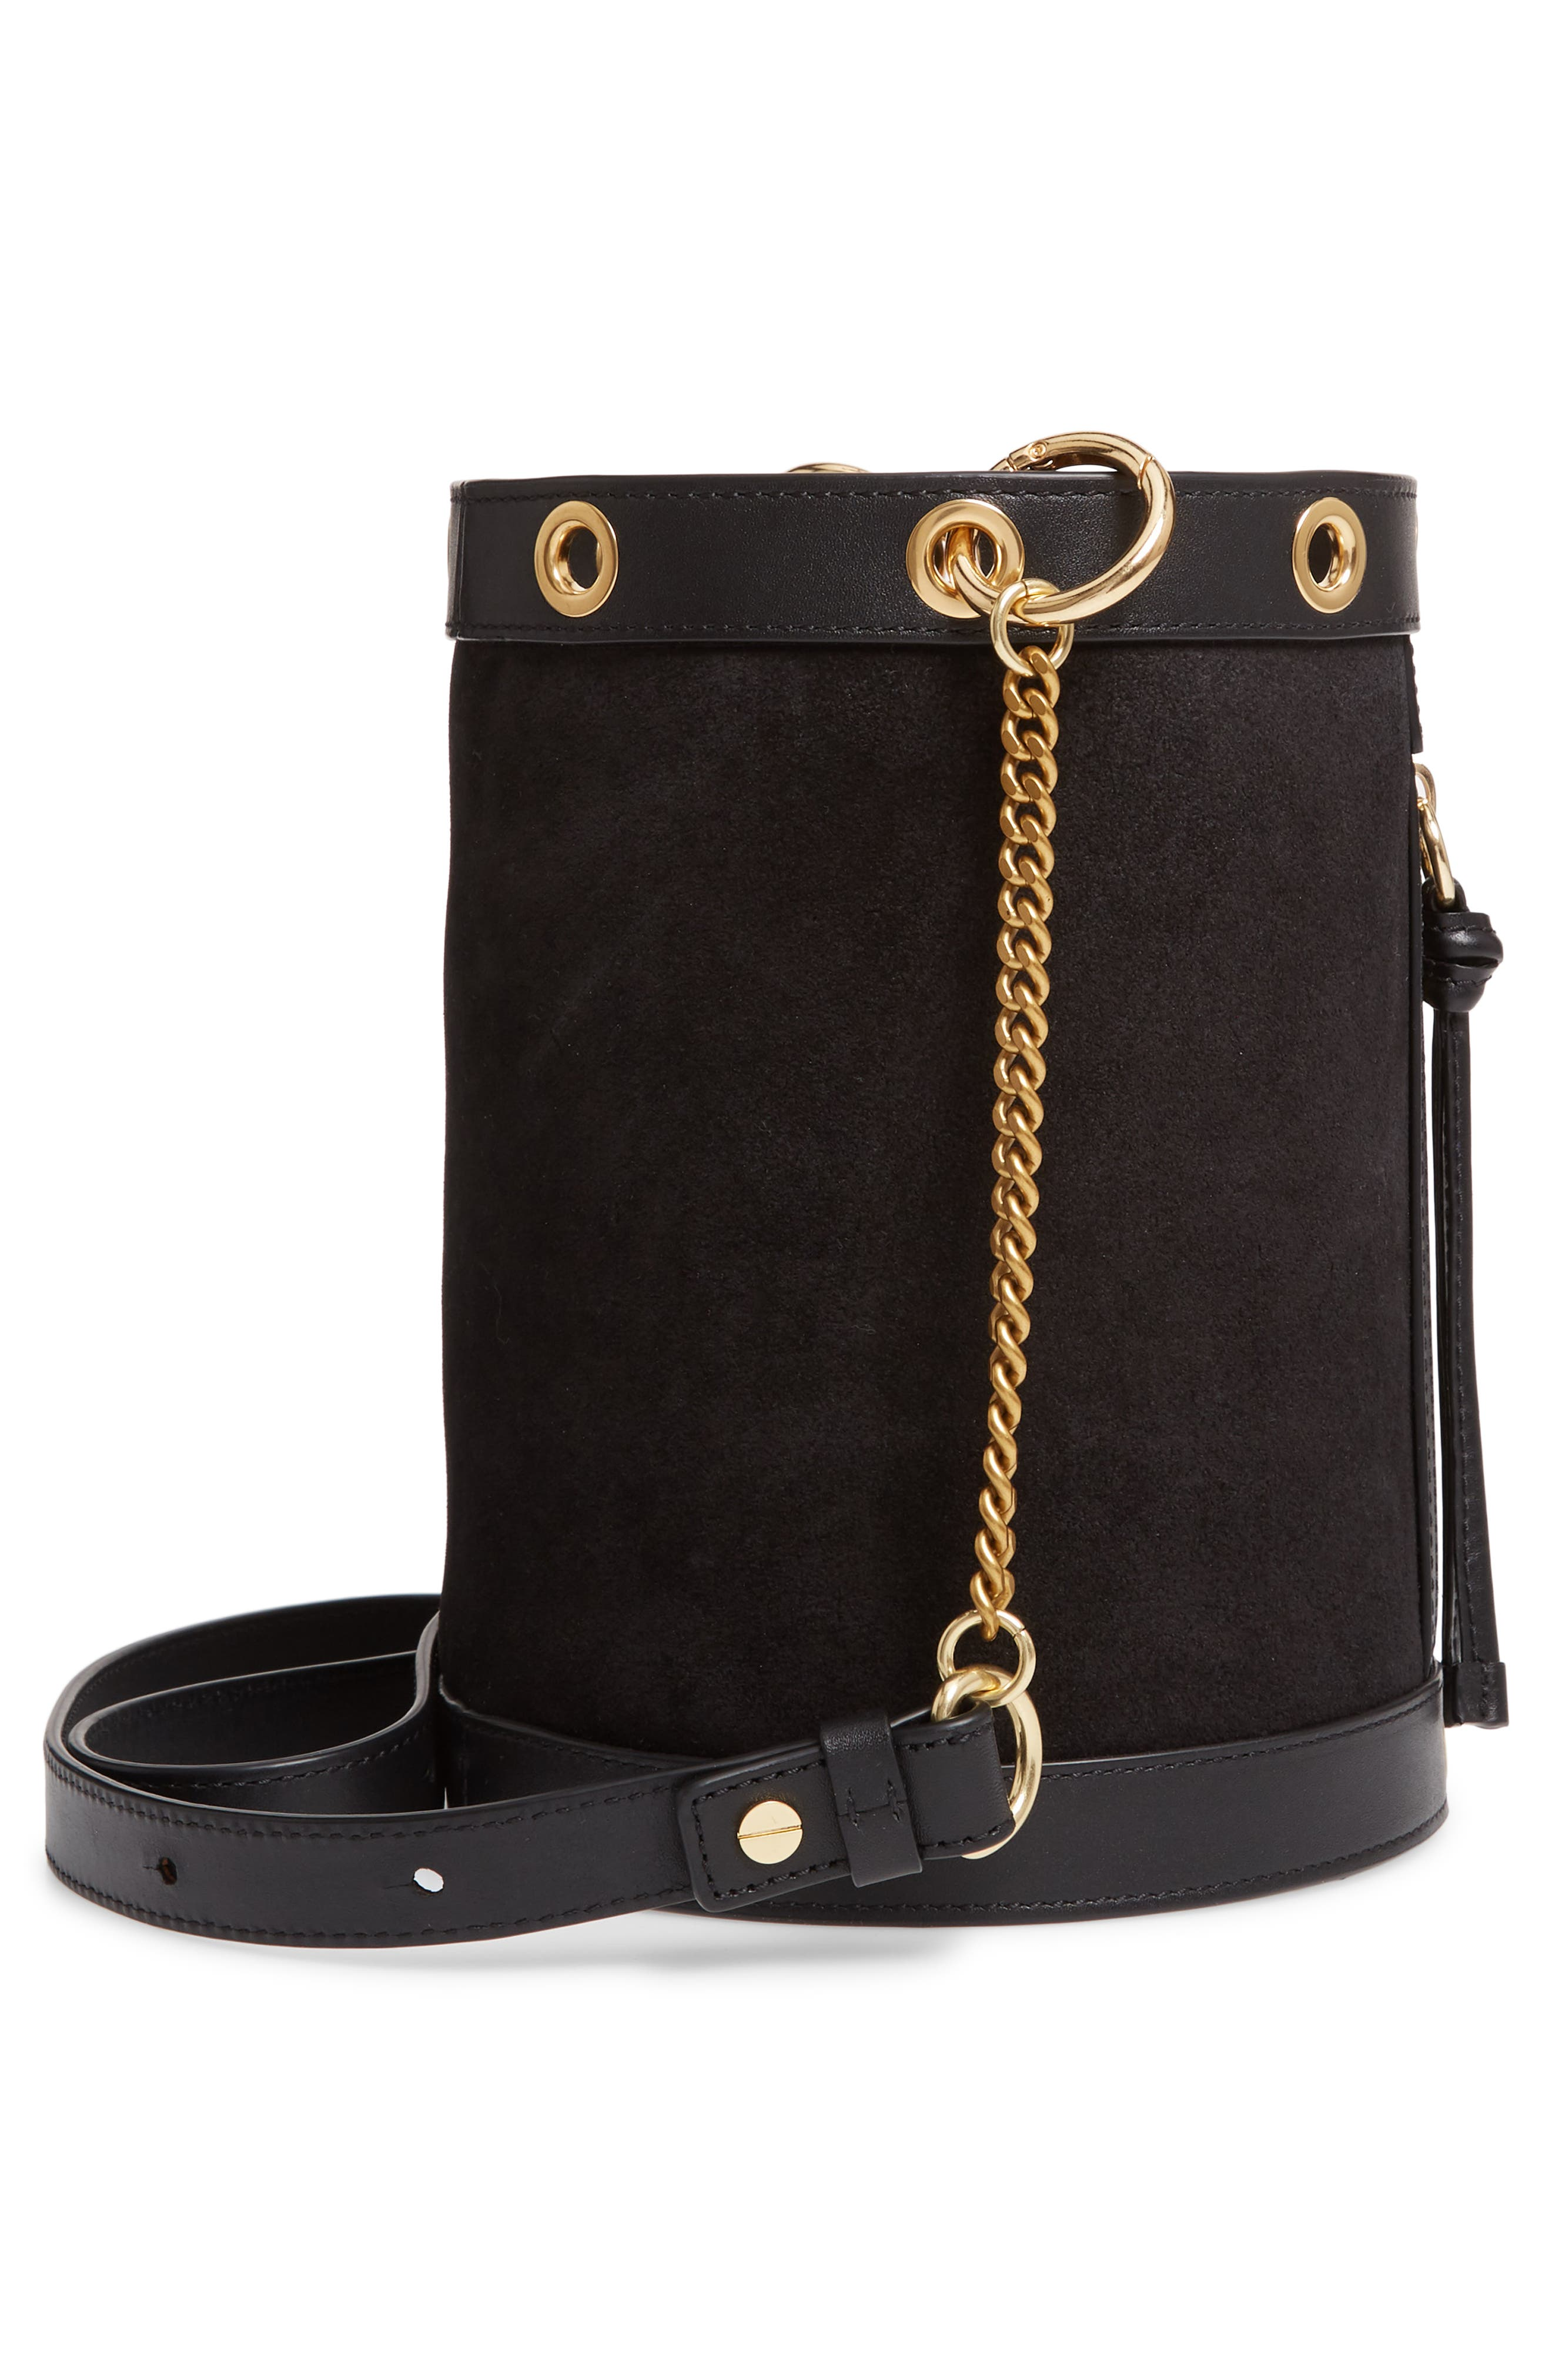 SEE BY CHLOÉ, Debbie Leather Bucket Bag, Alternate thumbnail 6, color, 001